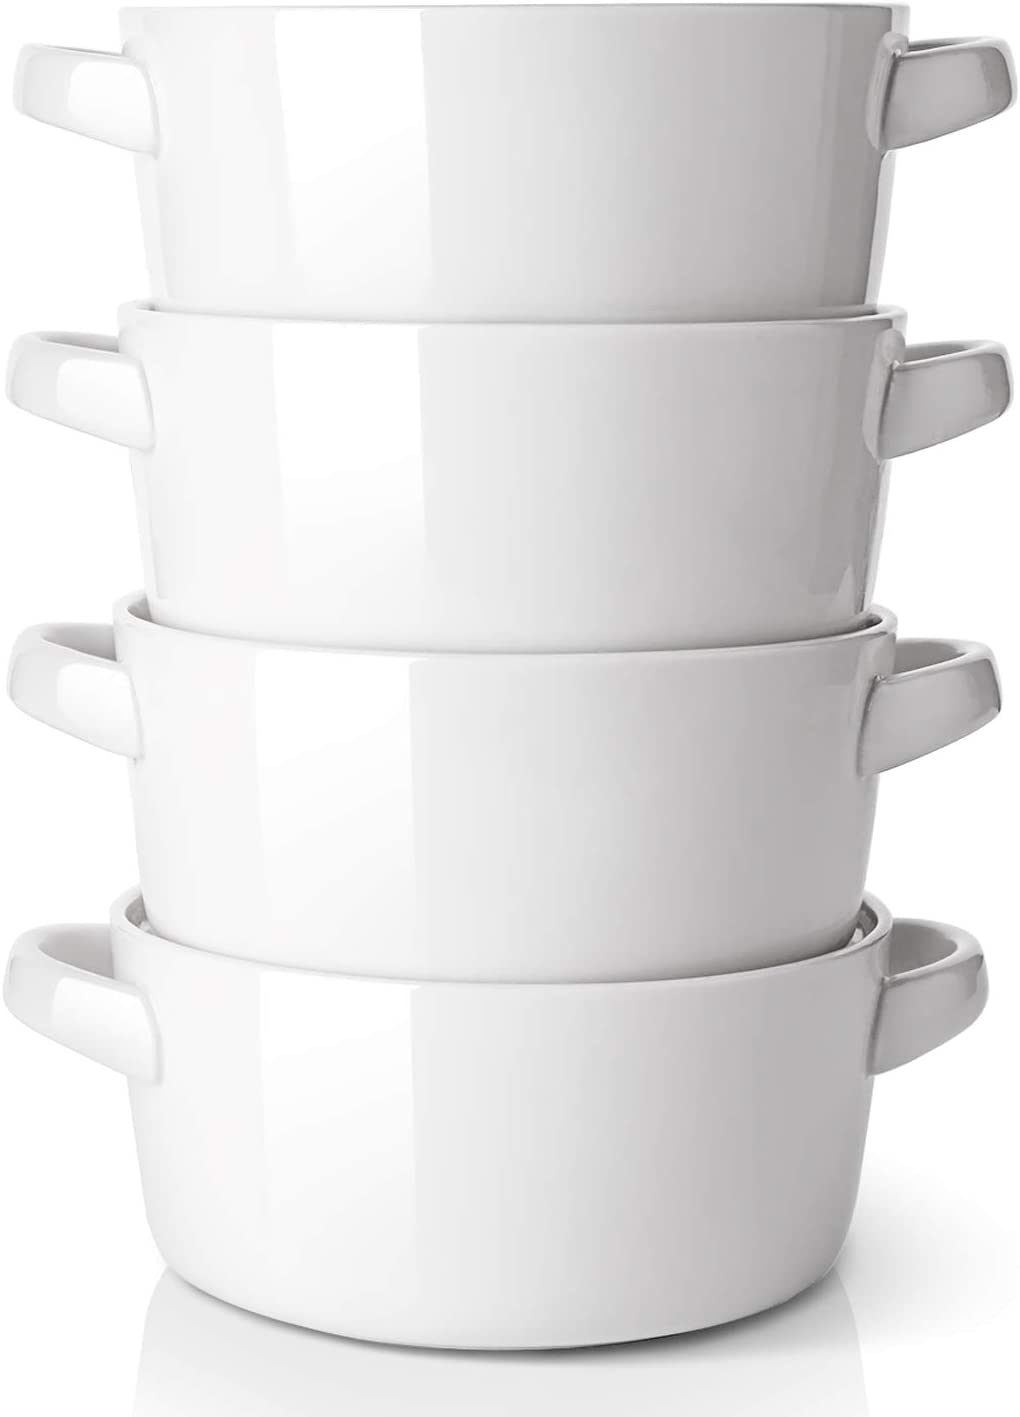 DOWAN Soup Bowls with Handles 24 oz, large White Bowls for kitchen, ceramic french onion soup bowl crocks oven & Microwave Dishwasher Safe, Porcelain Stackable Handled Bowls Set of 4